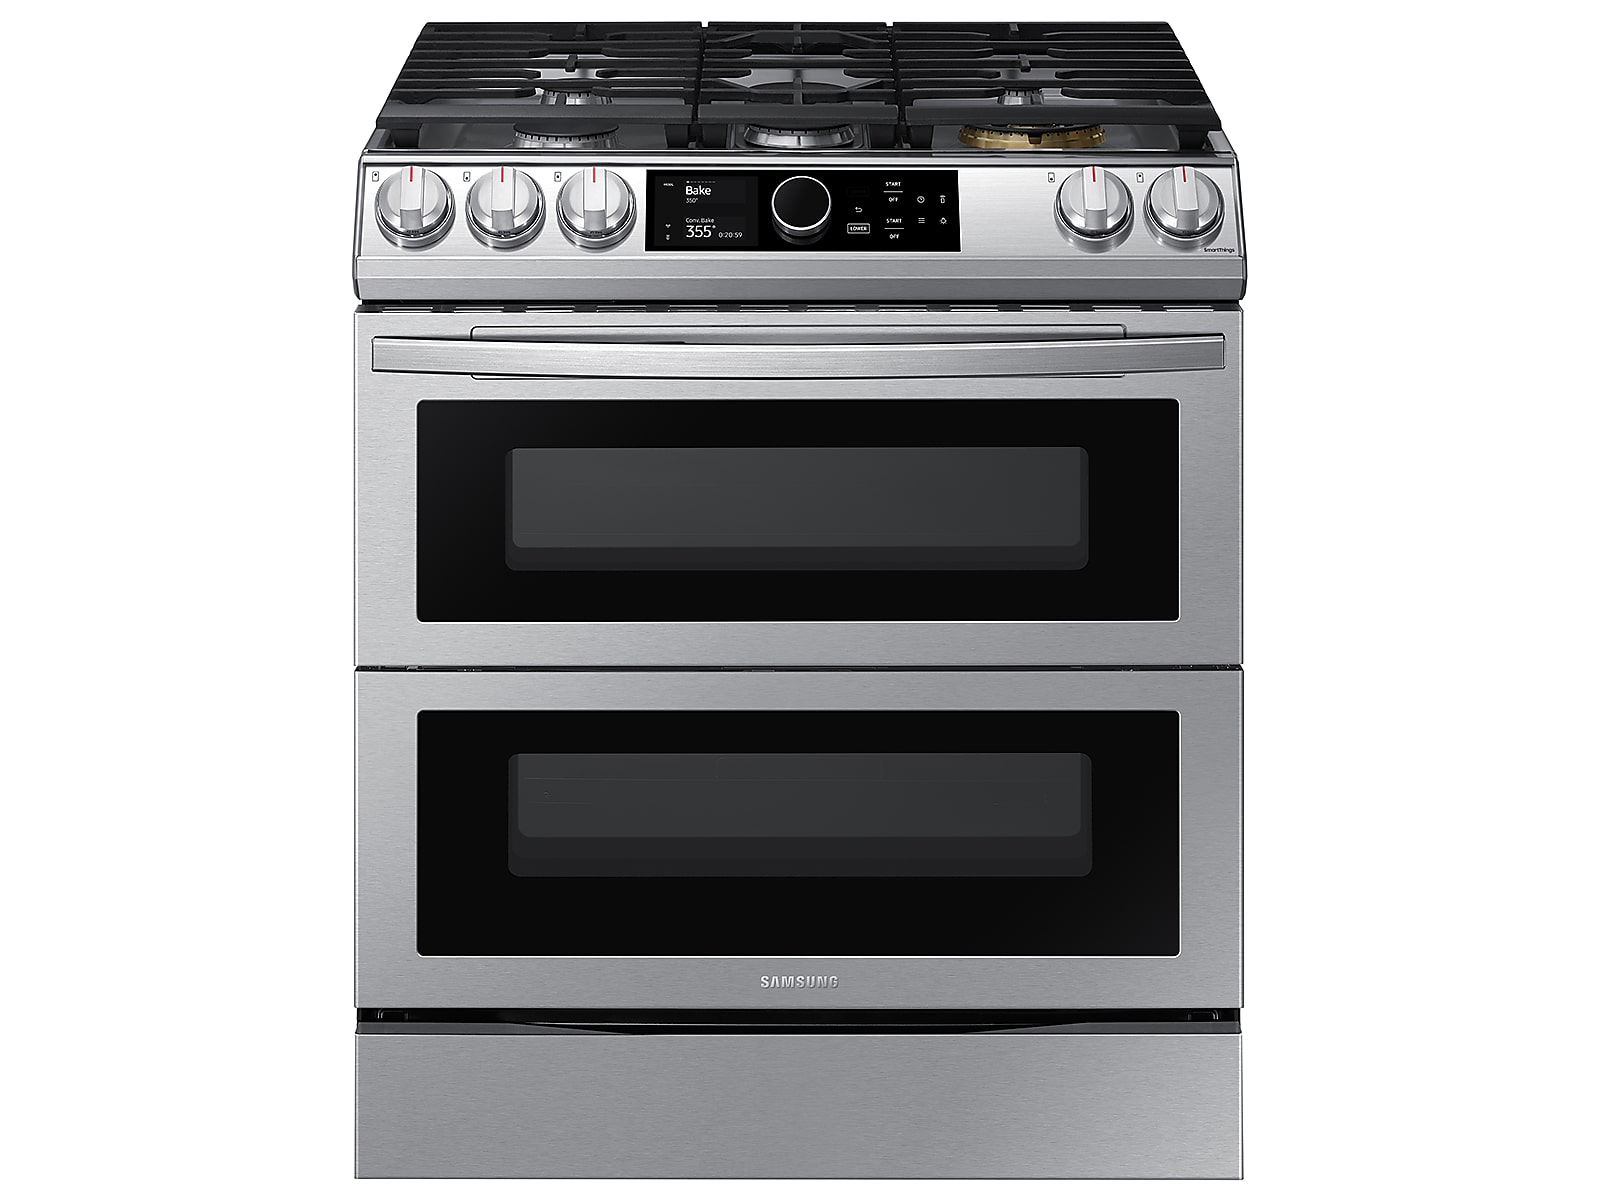 Samsung 6.3 cu ft. Smart Slide-in Gas Range with Flex Duo™, Smart Dial & Air Fry in Silver(NY63T8751SS/AA)